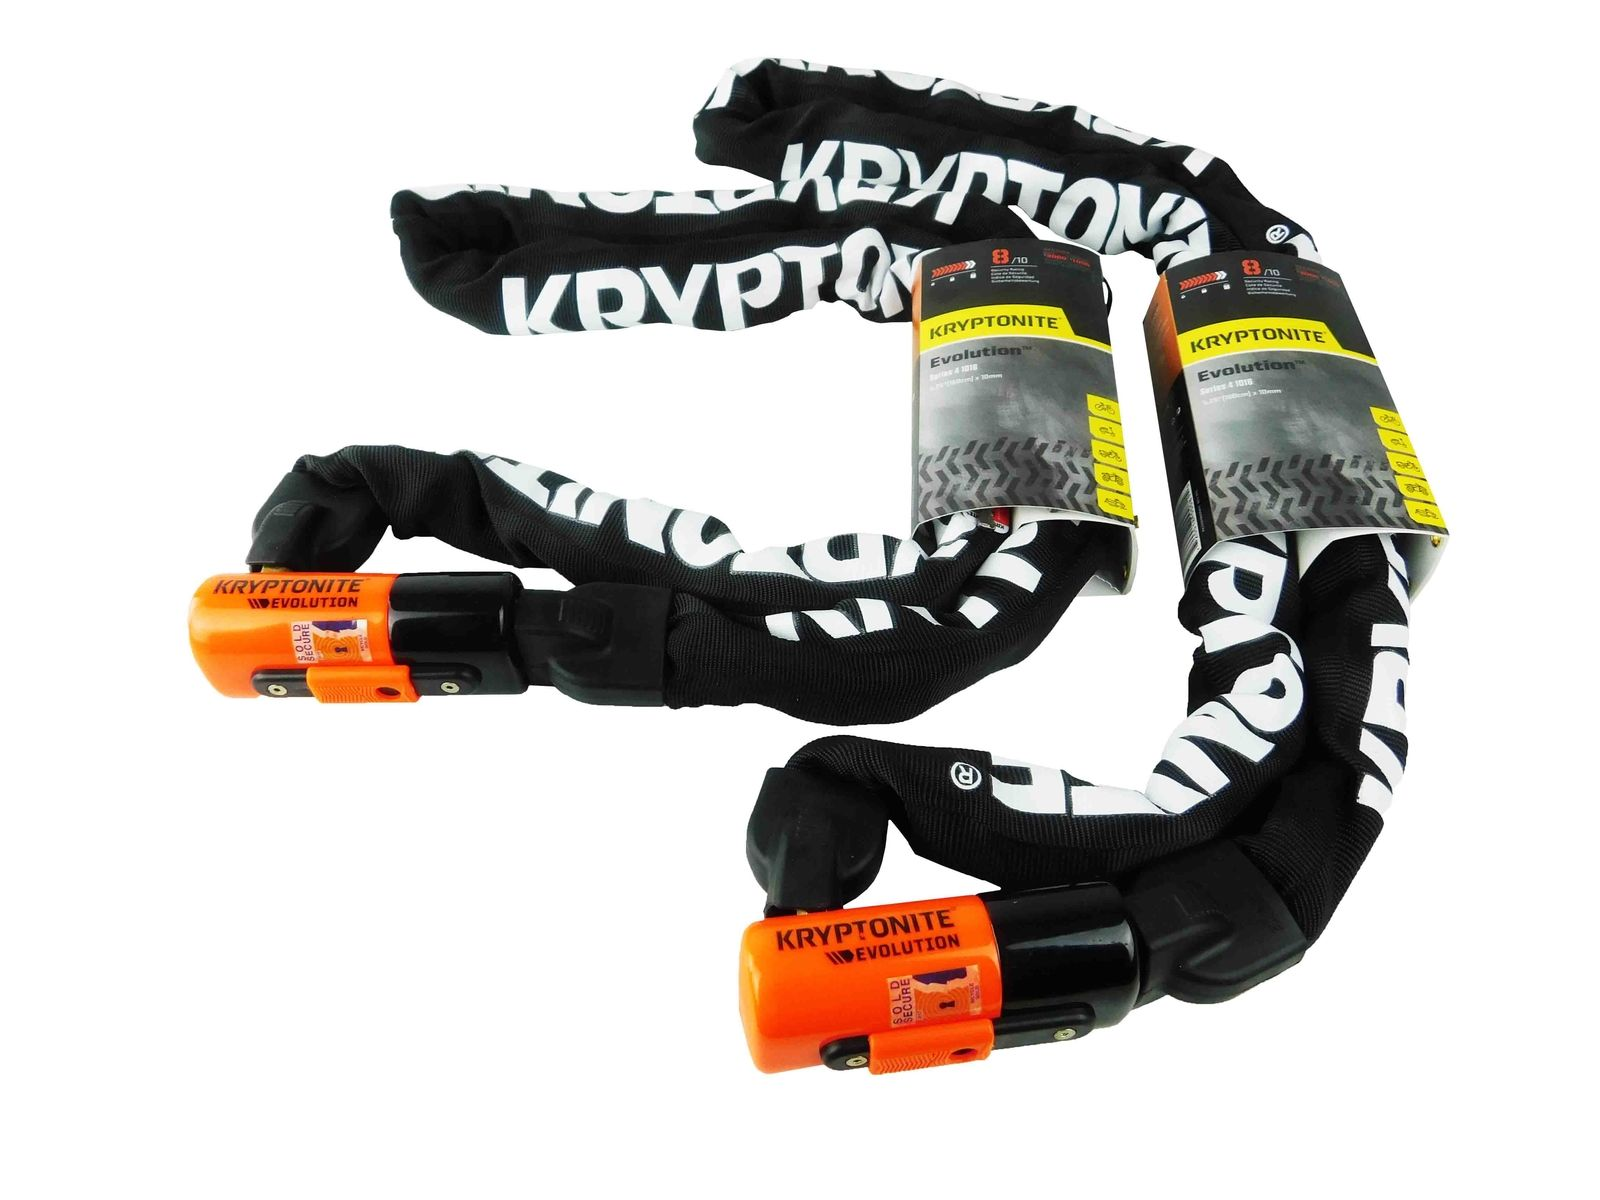 Kryptonite Evolution Series 4 1016 5.25 ft Integrated Chain 2-Pack